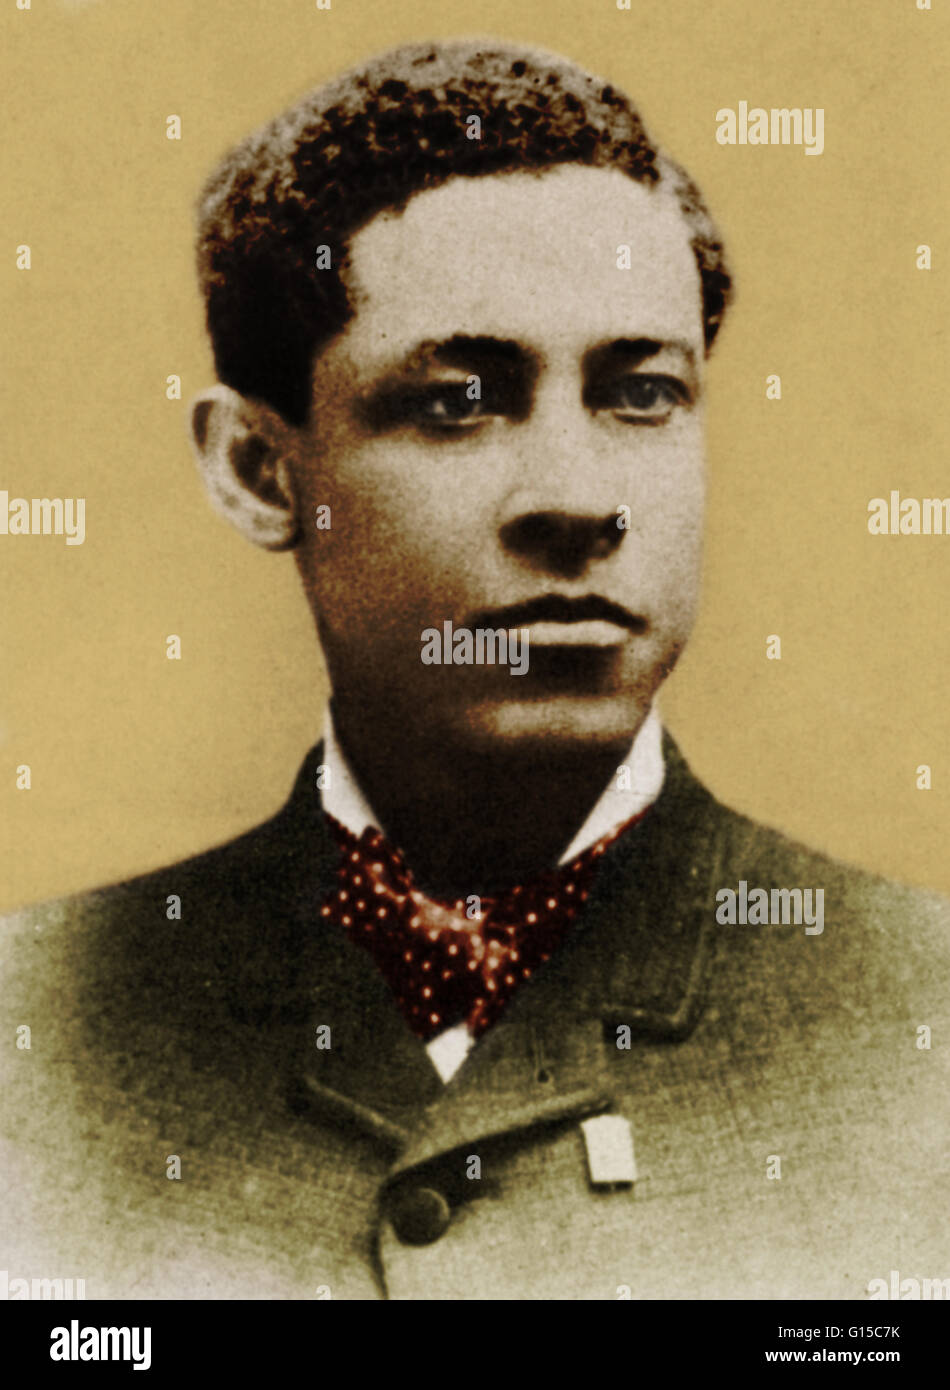 Jan Ernst Matzeliger (September 15, 1852 - August 24, 1889) was an African-American inventor in the shoe industry. - Stock Image